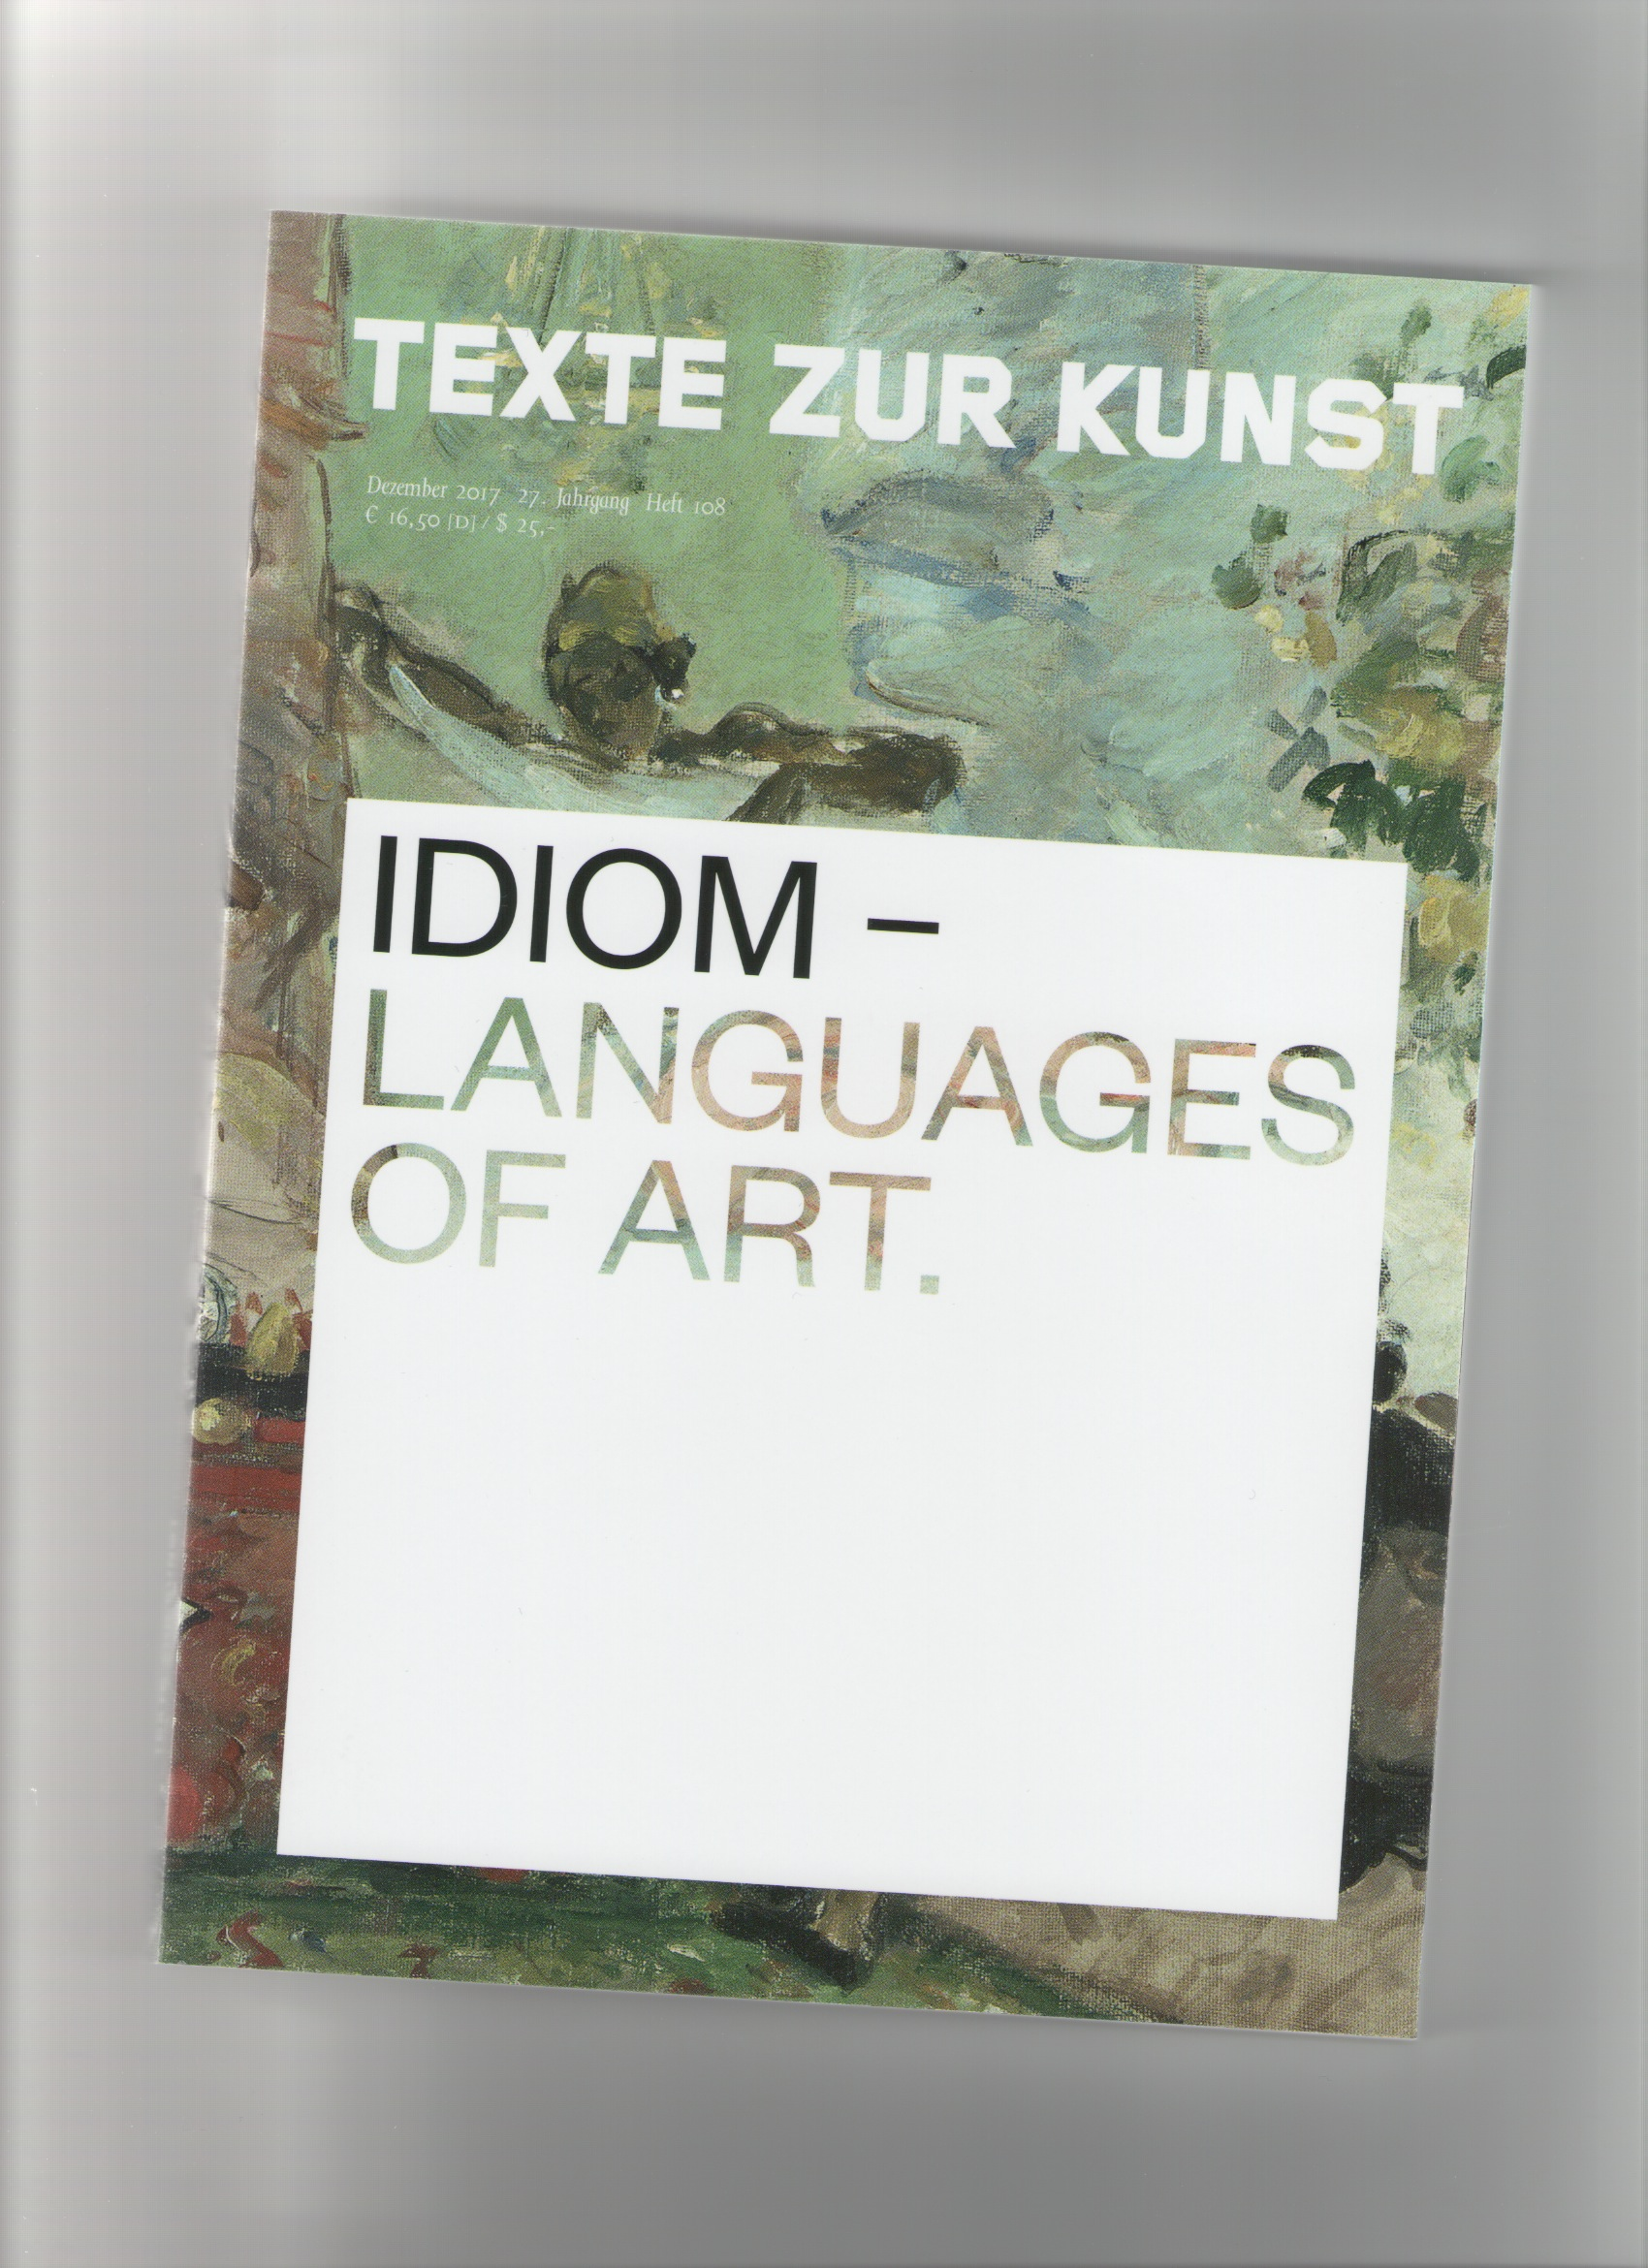 TEXTE ZUR KUNST (ed.) - Texte Zur Kunst 27/108 (Dec. 2017) Idiom: Languages of Art.